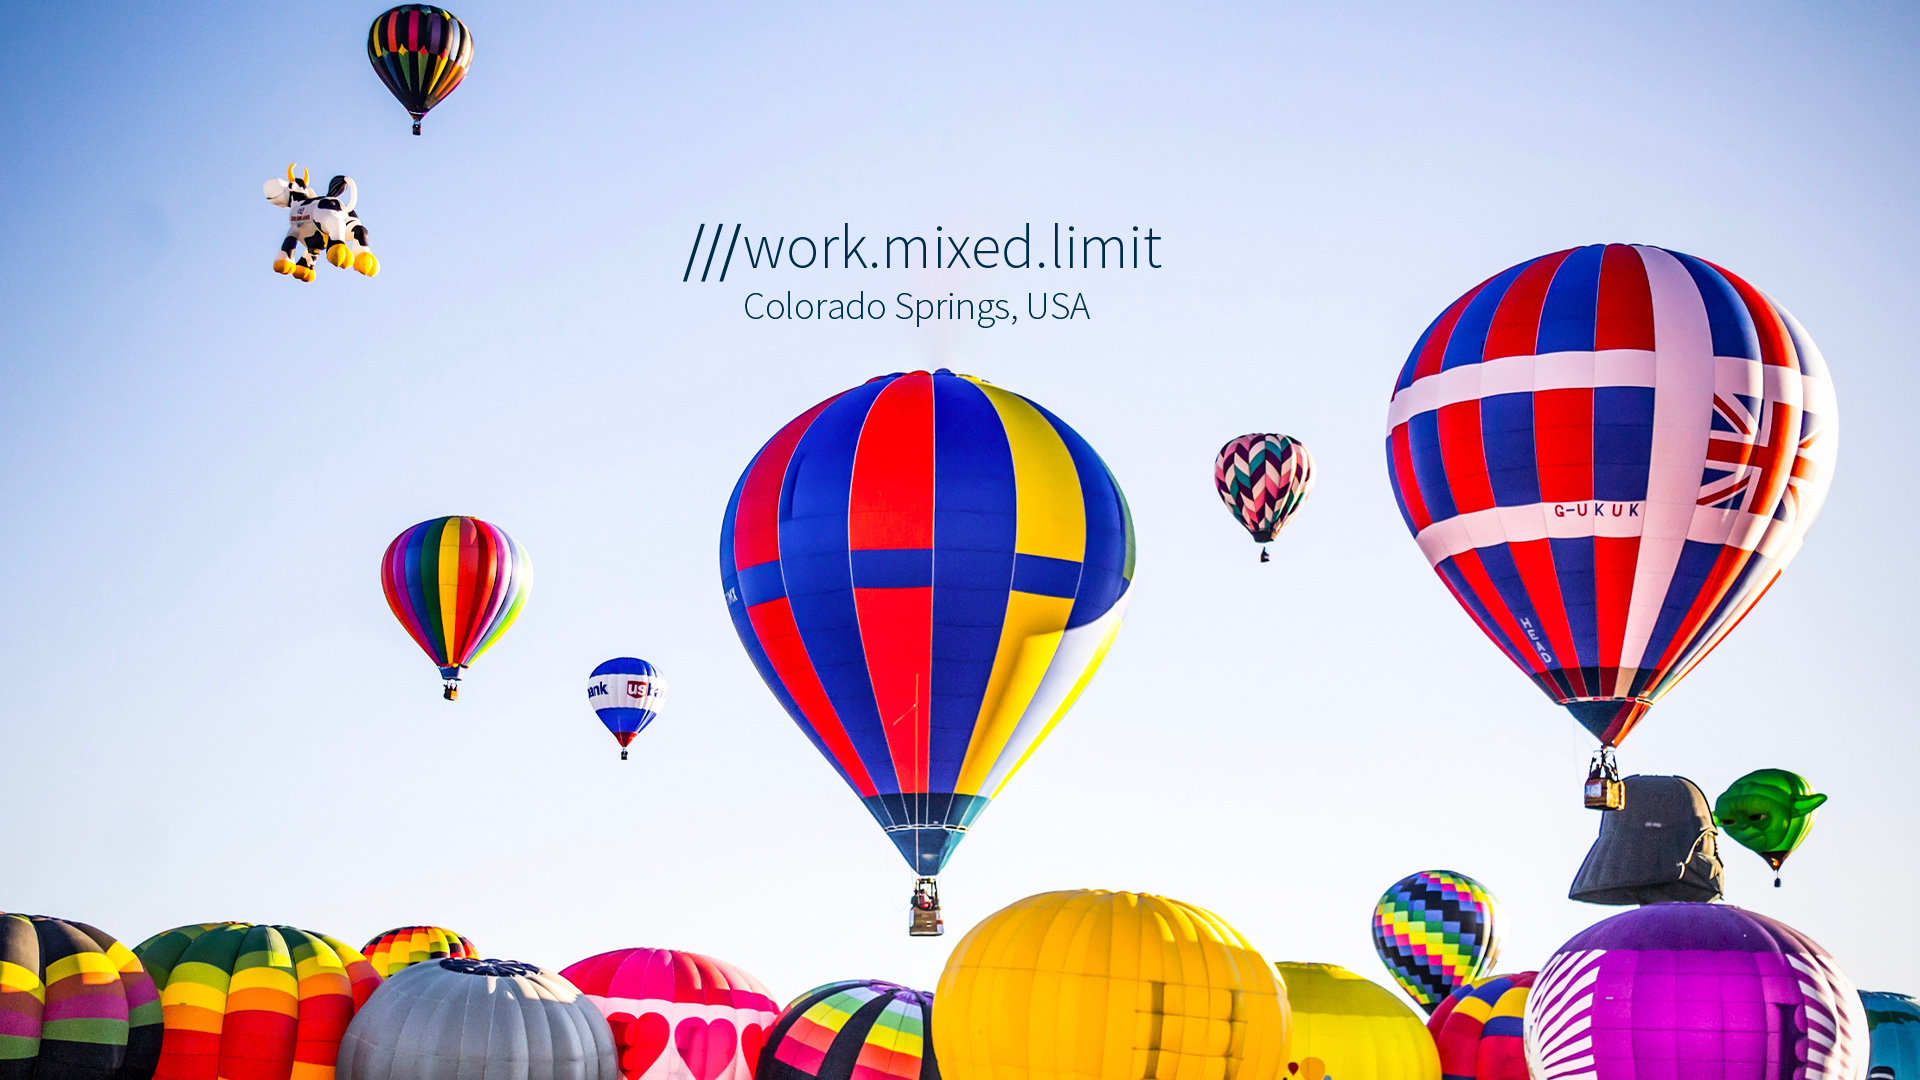 colourful hot-air balloons in the sky at 3 word address work.mixed.limit